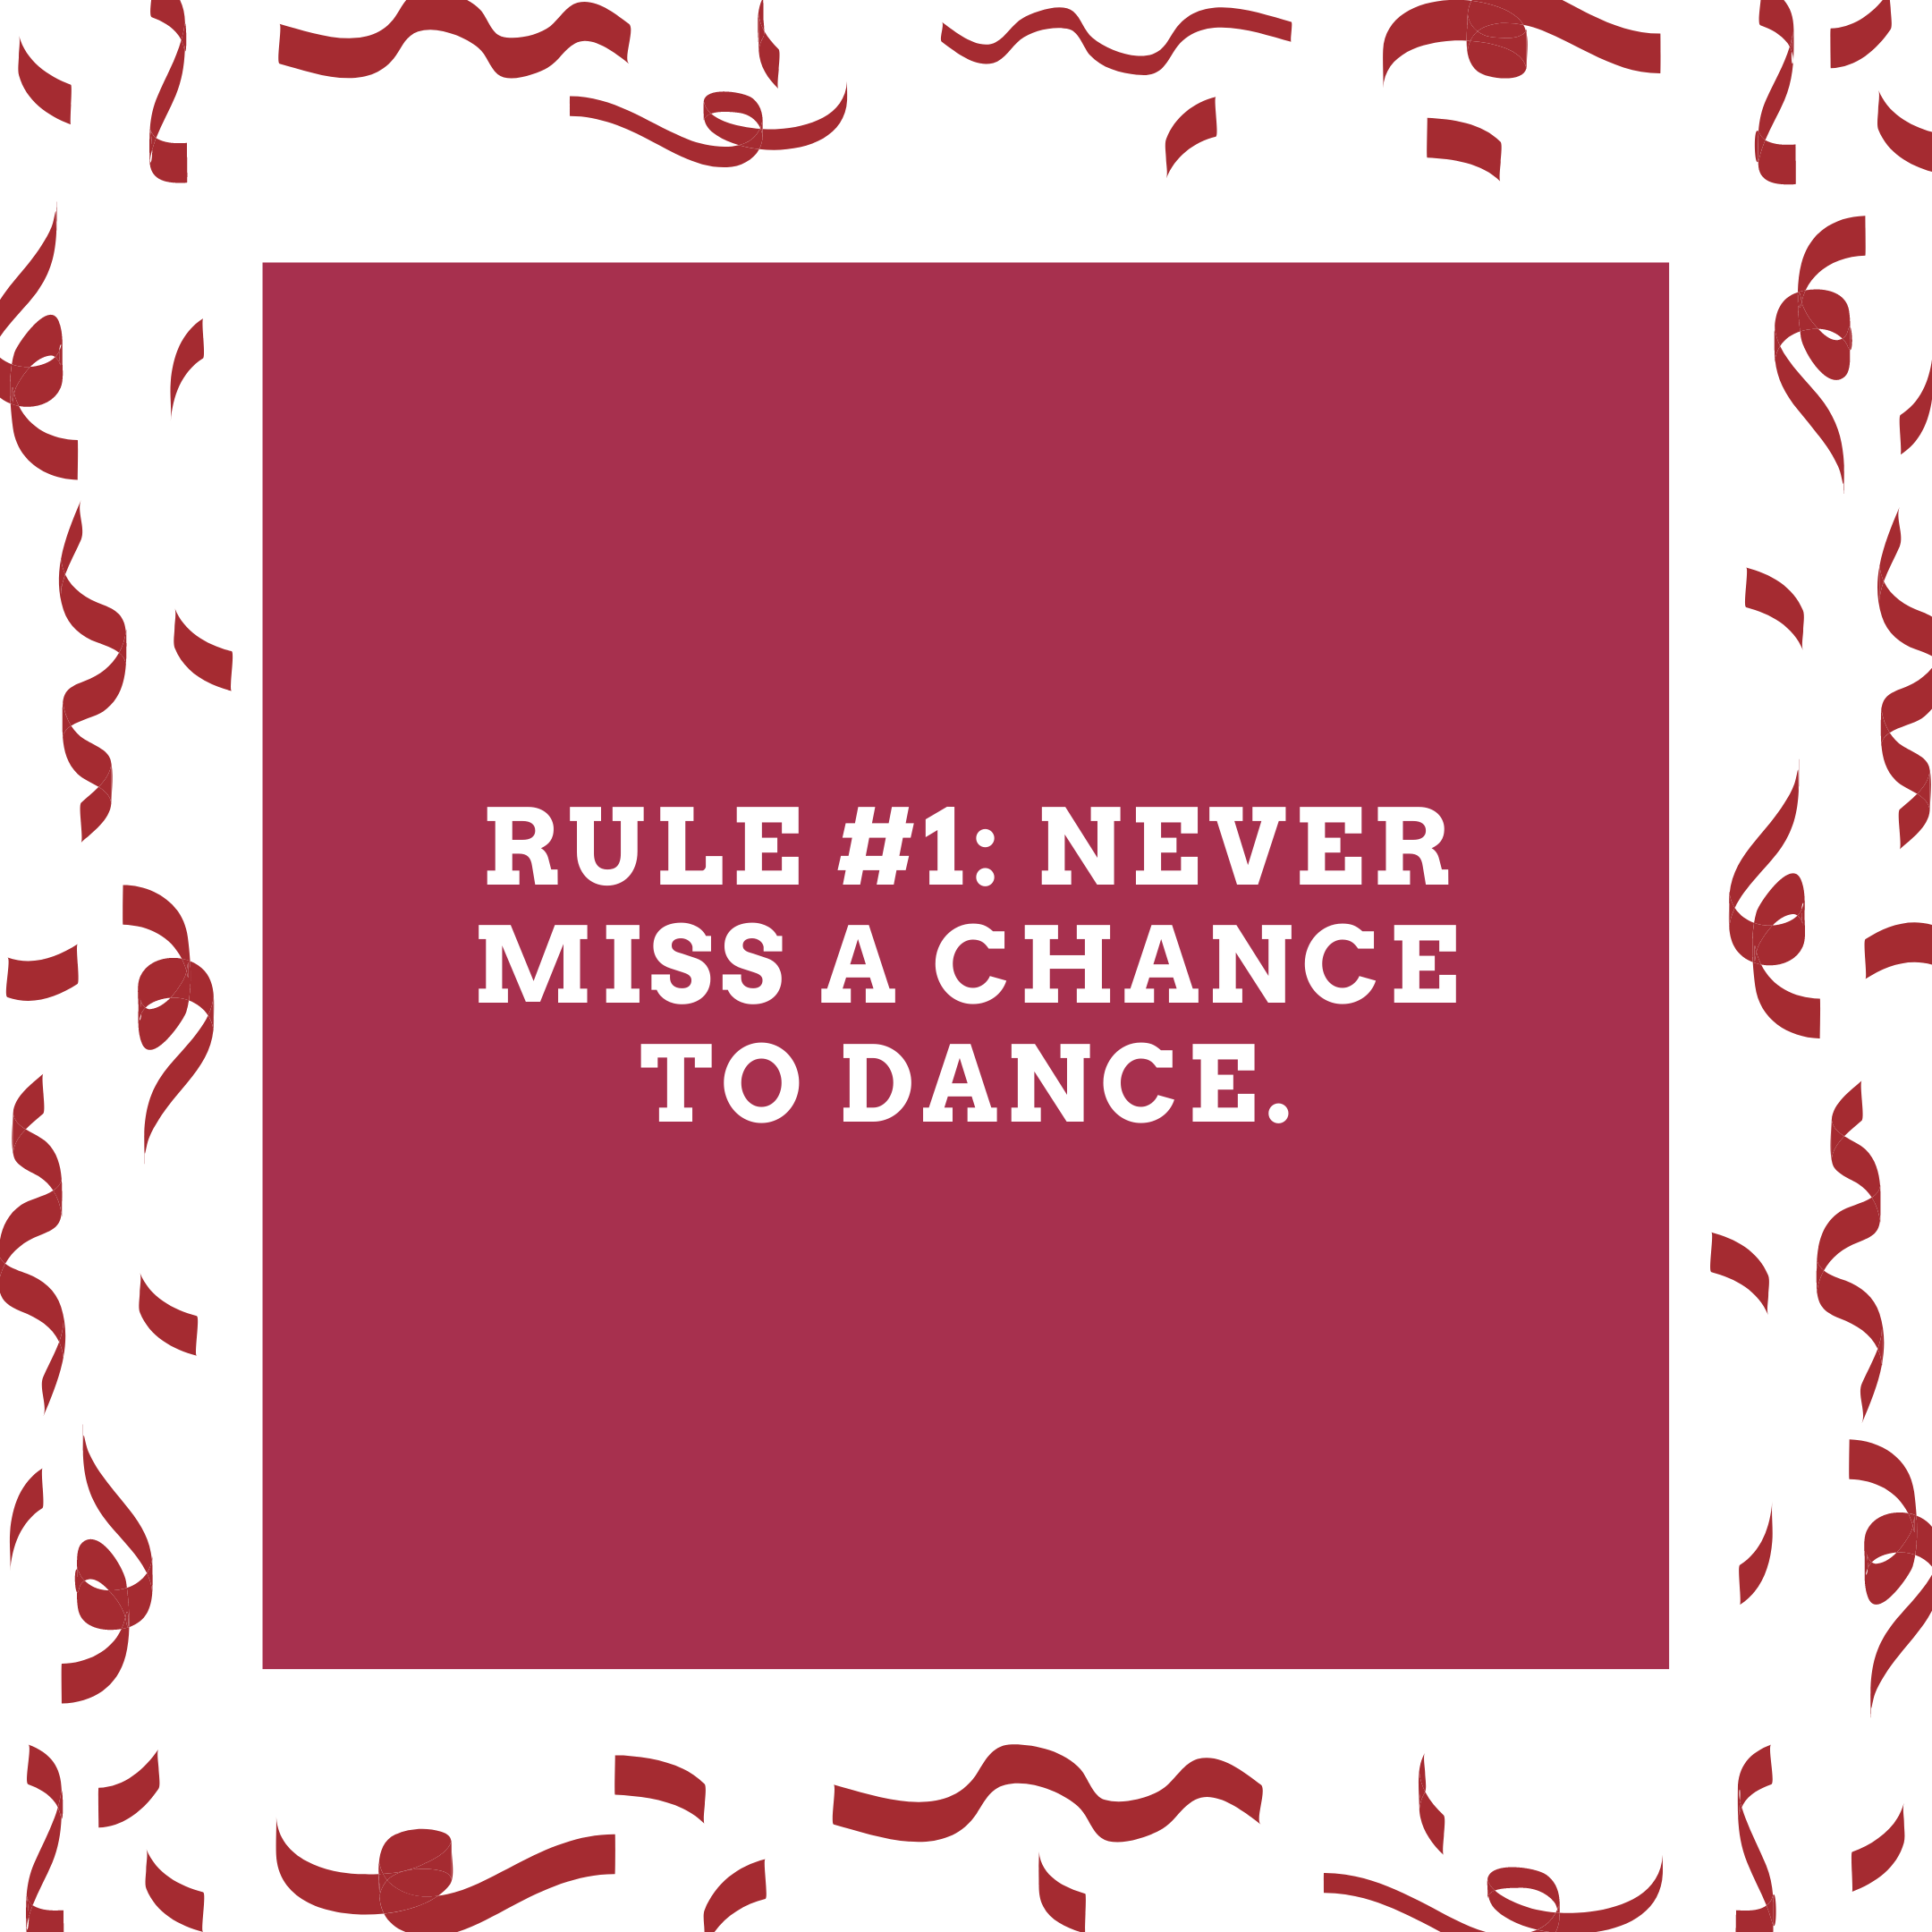 Rule #1: Never miss a chance to dance.